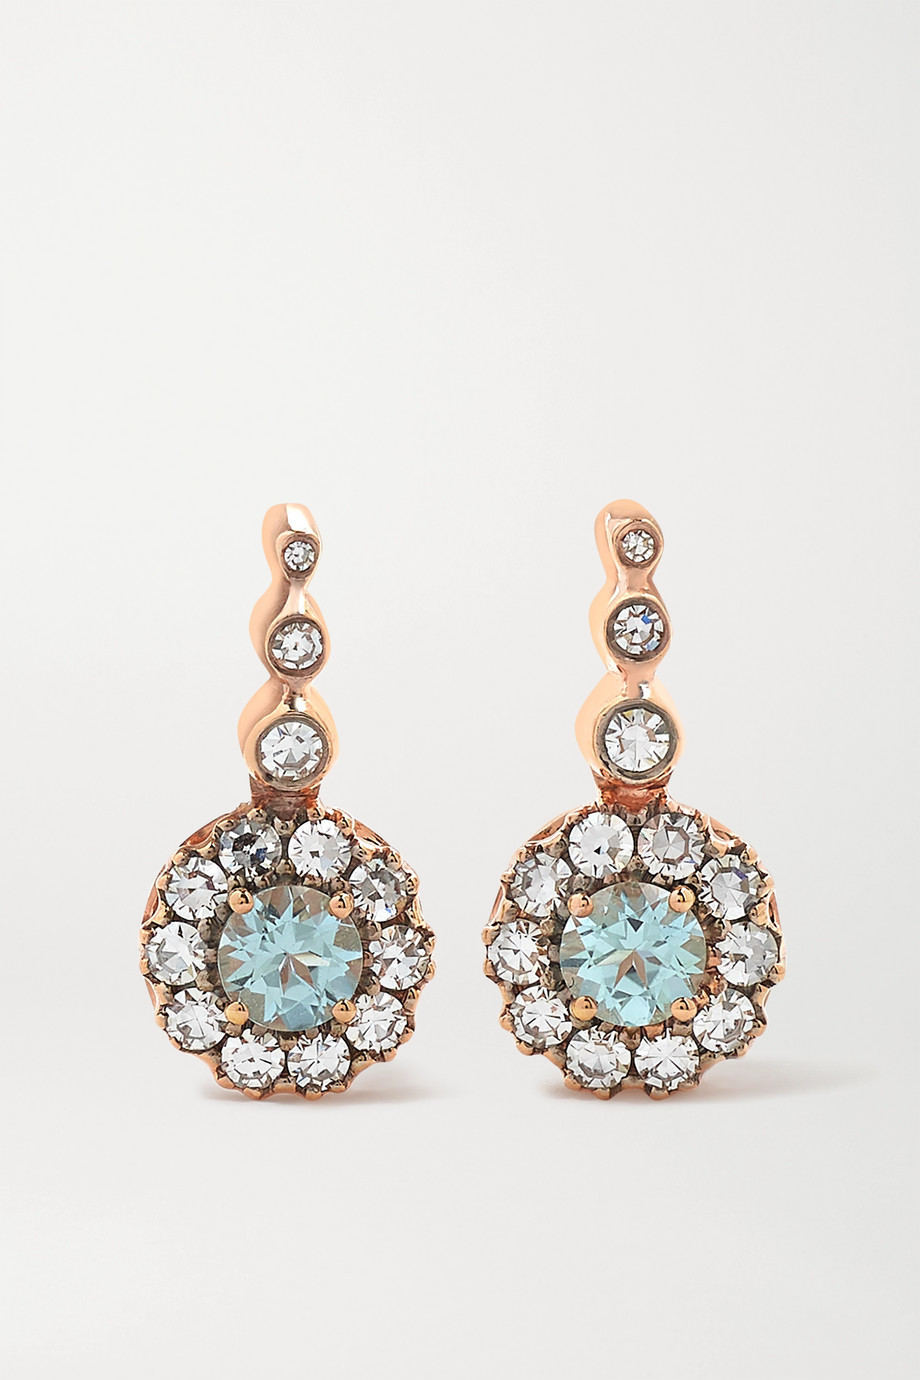 Selim Mouzannar Beirut Basic 18-karat rose gold, paraiba and diamond earrings